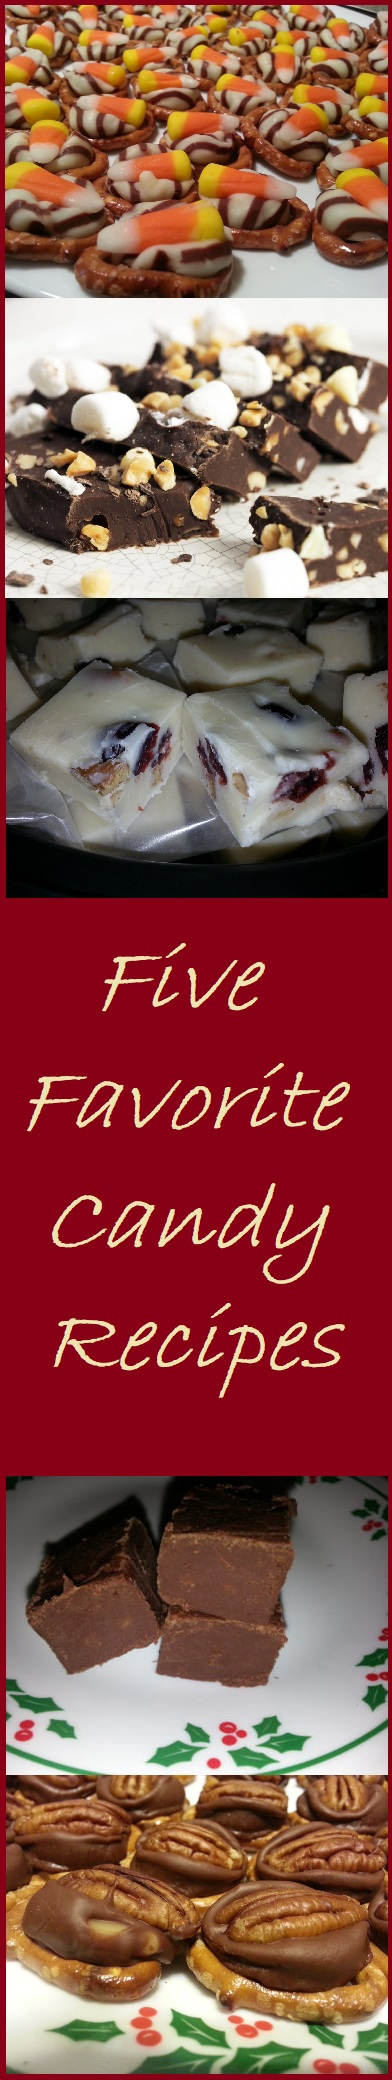 Five Favorite Candy Recipes--These recipes are easy to prepare and make great gifts.